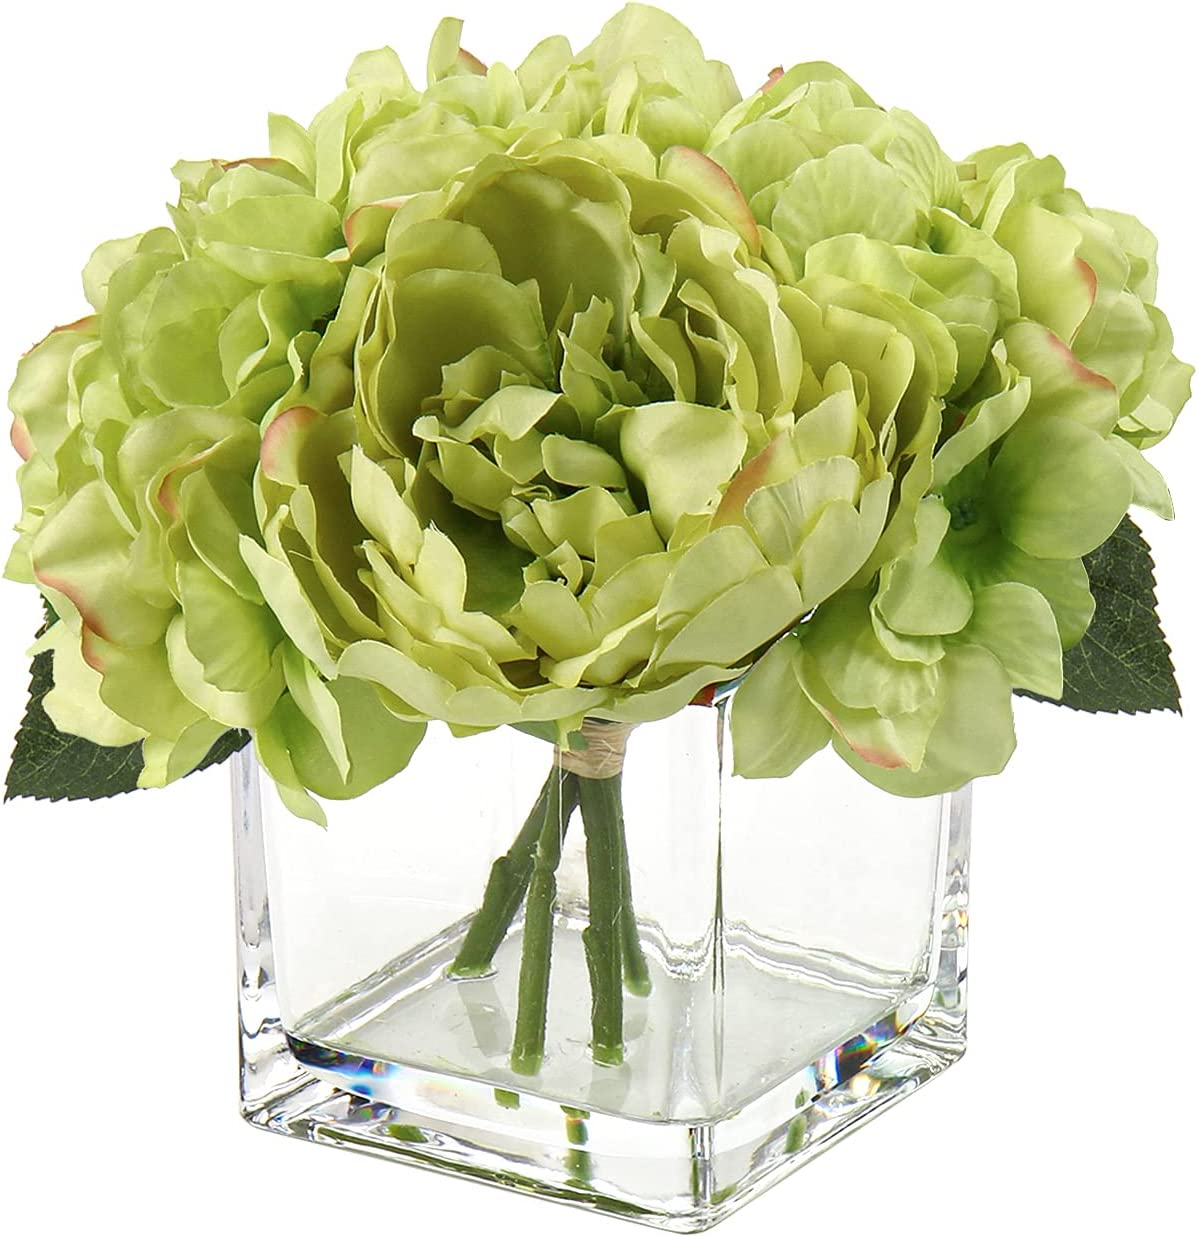 Faux Floral Arrangements in Glass Vase Faux Peony Hydrangea Silk Flower for Home Office Kitchen Table Decor Green Flowers Green Decor